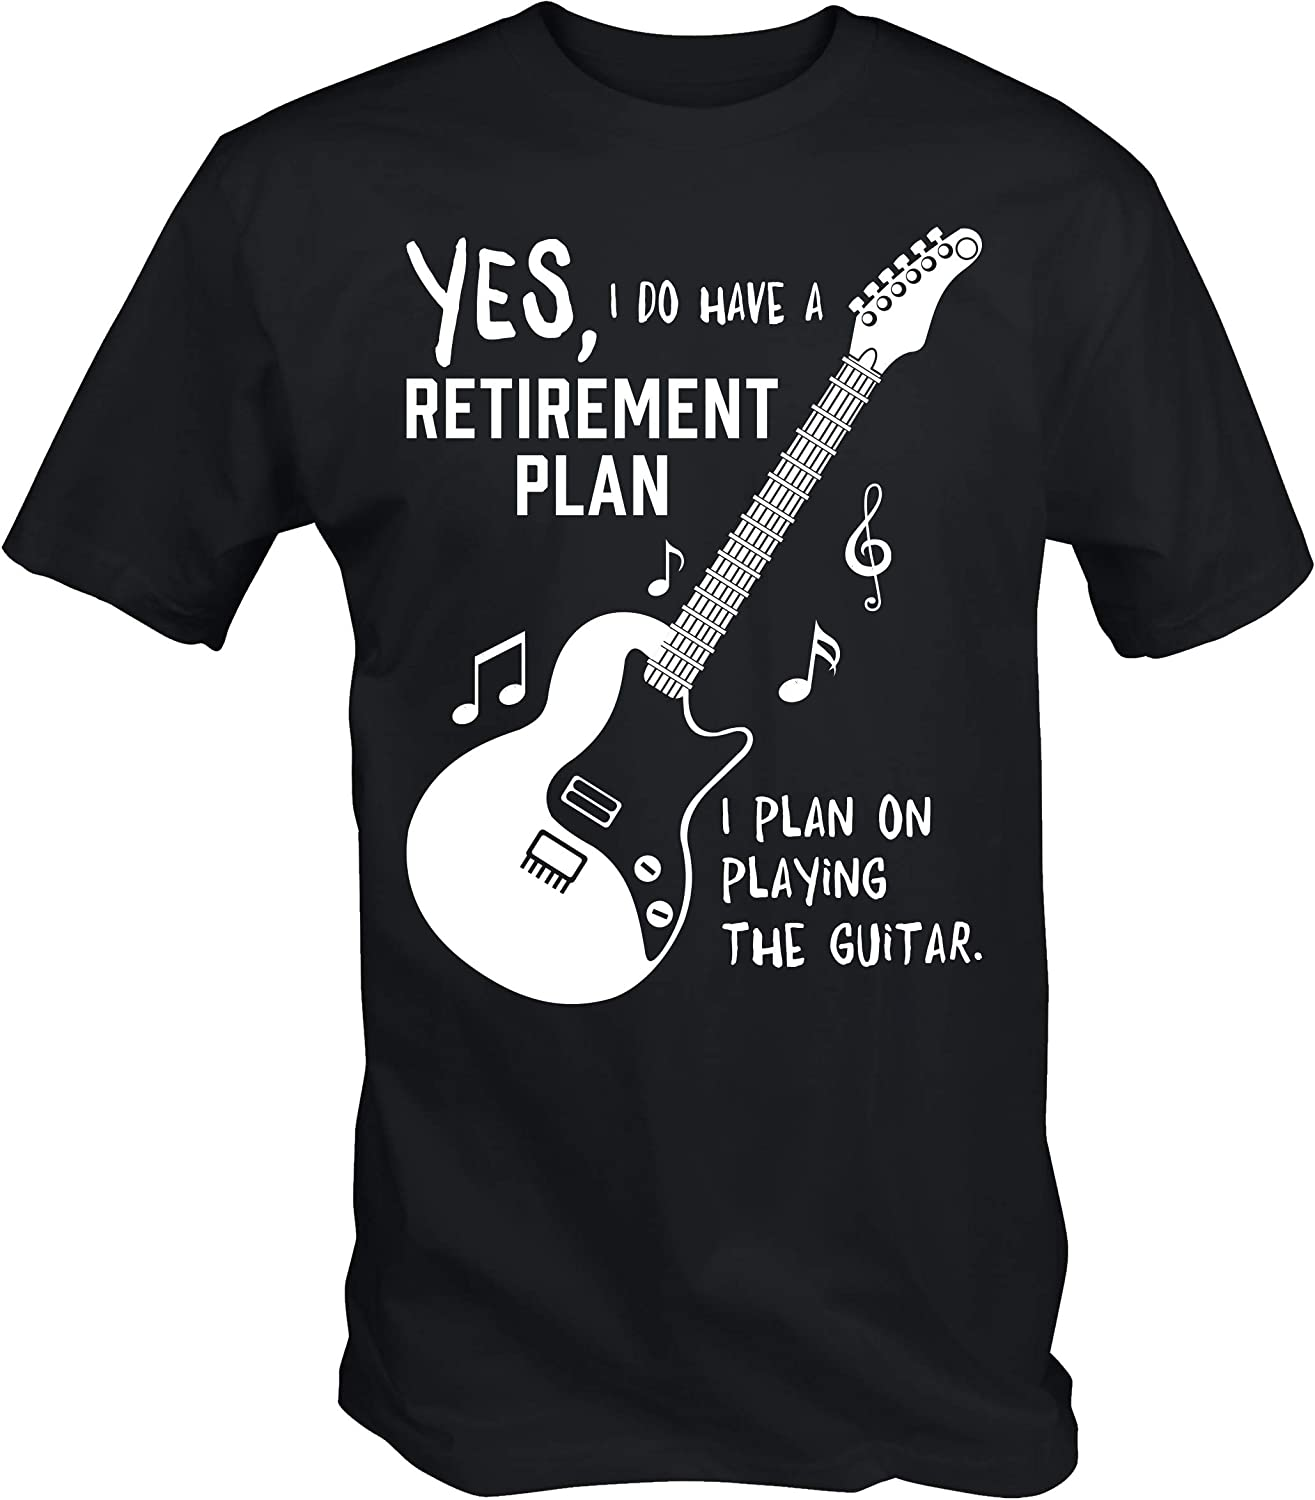 6TN My Guitarra ES MY Jubilación Plan de Camiseta: Amazon.es: Ropa ...